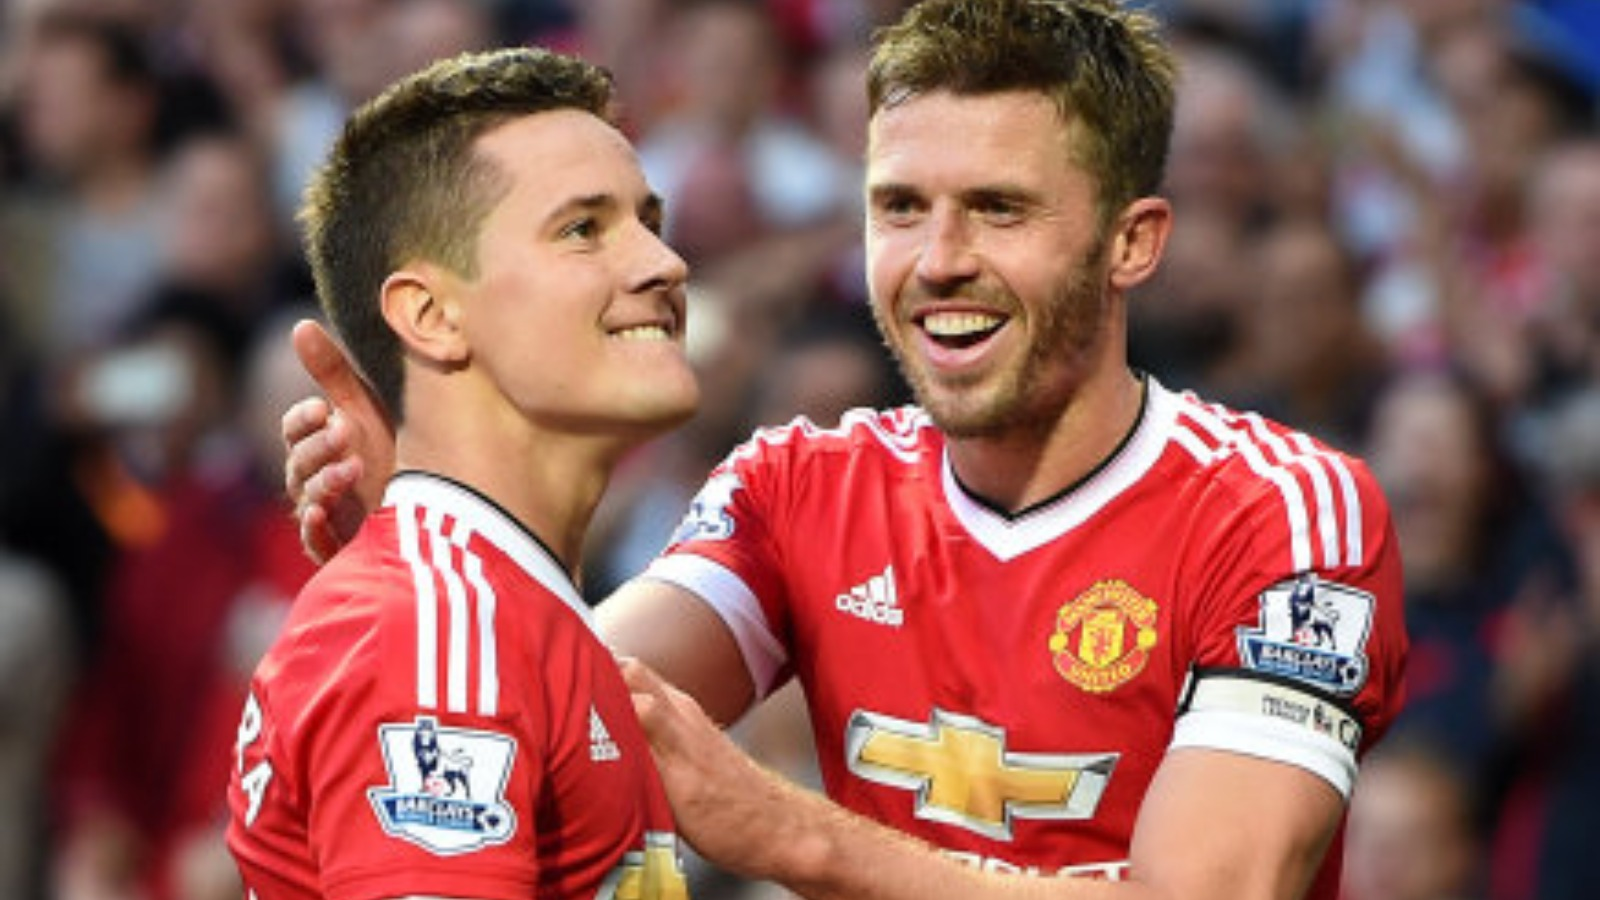 Manchester United overcome Liverpool at Old Trafford - ITV News